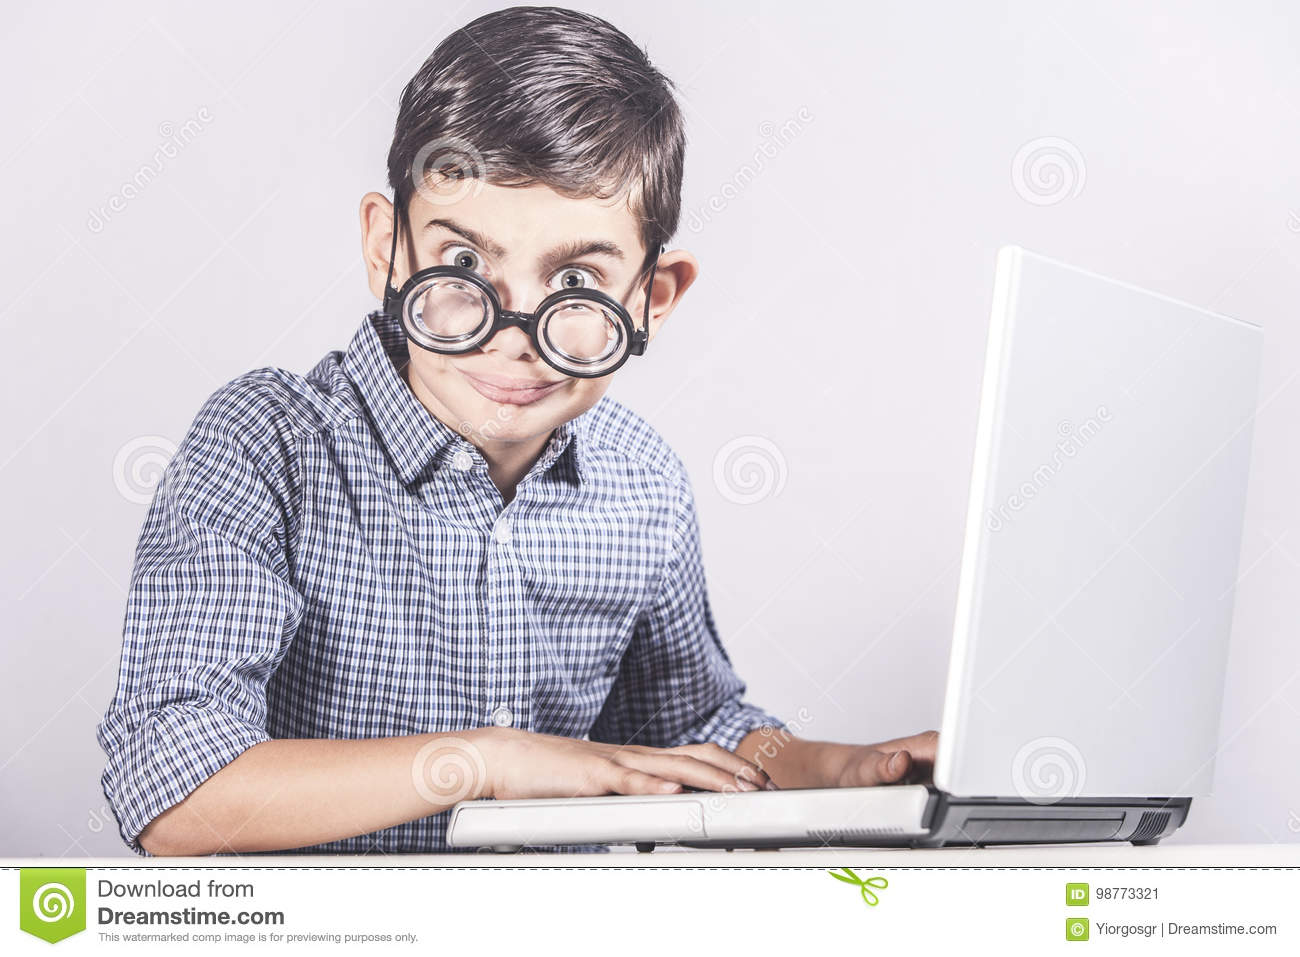 Computer Nerd Stock Image Image Of Hilarious Cute Face 98773321